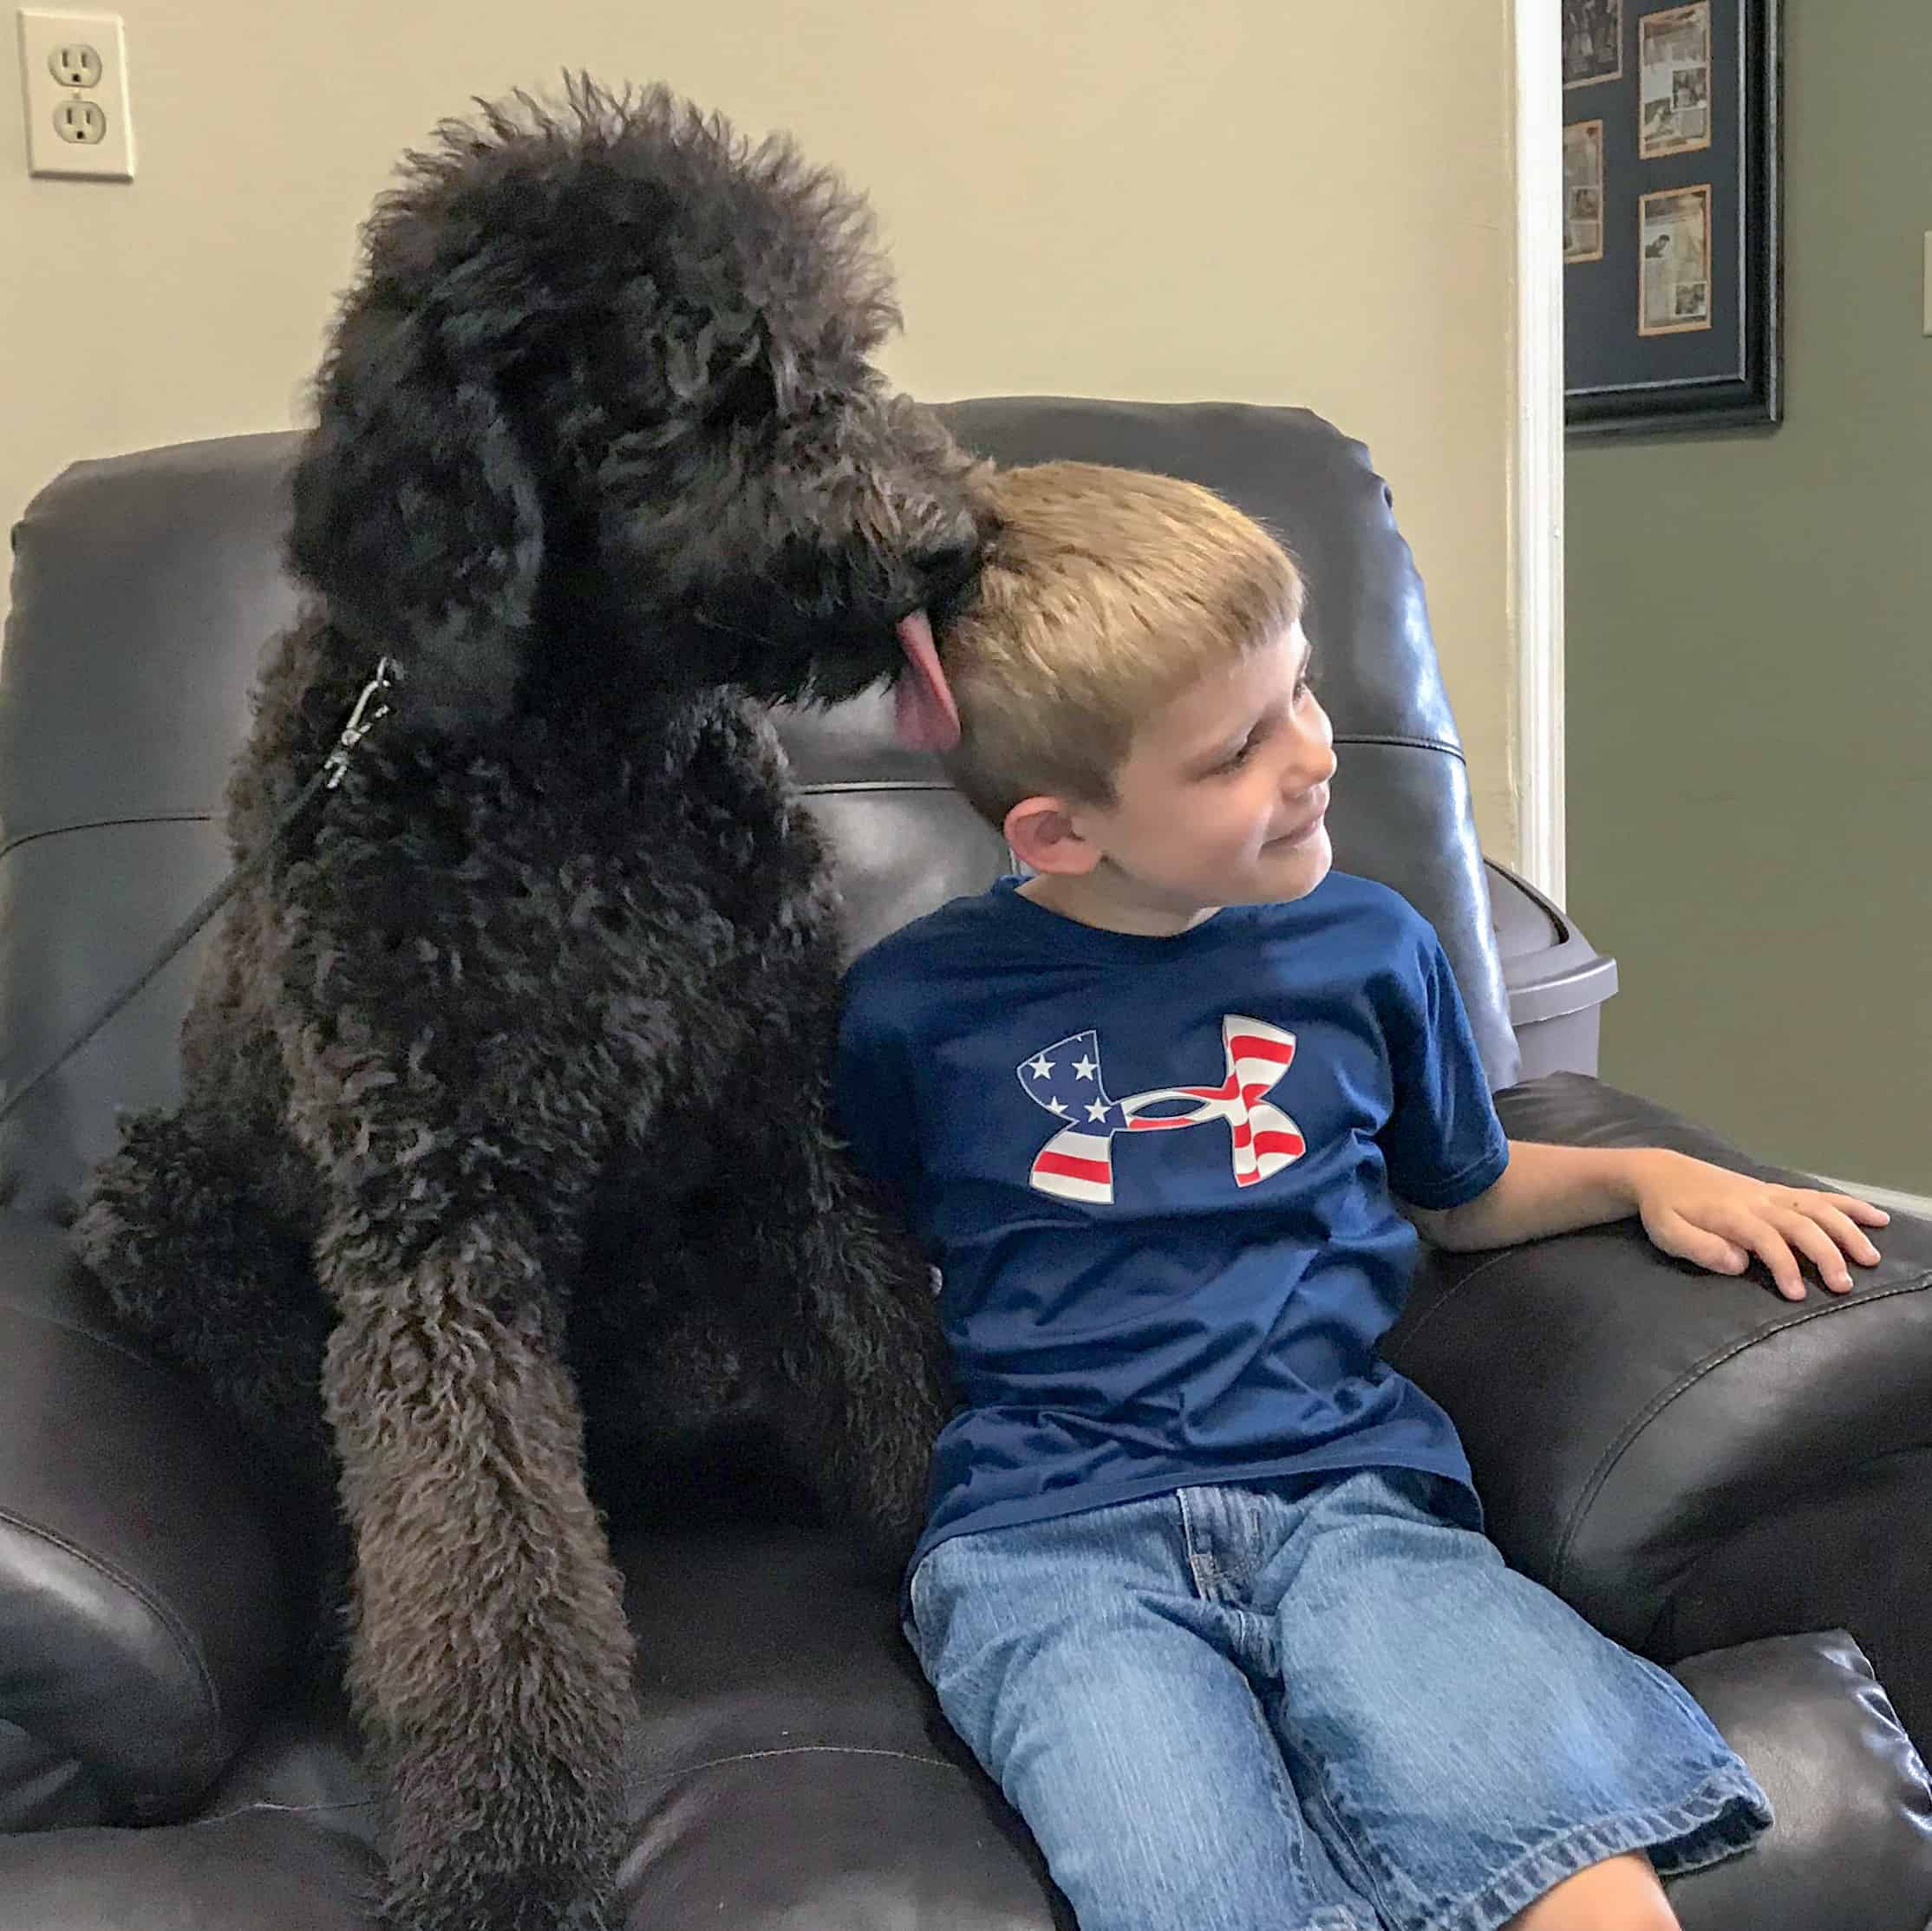 autism service dog meeting child